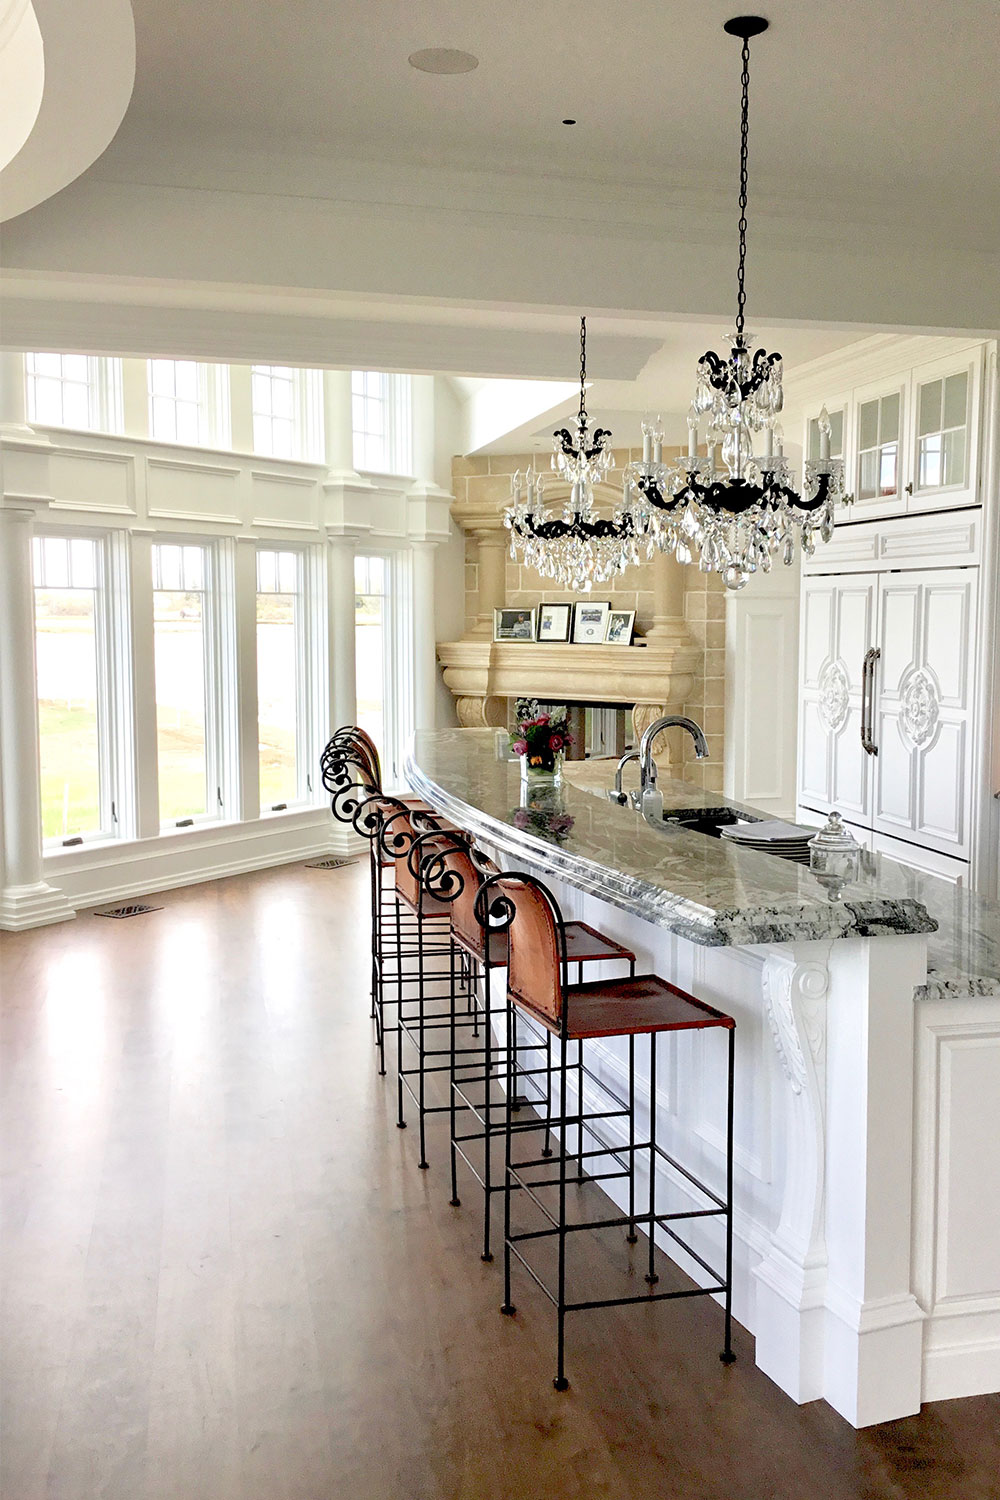 White Kitchen With Floor-to-Ceiling Windows